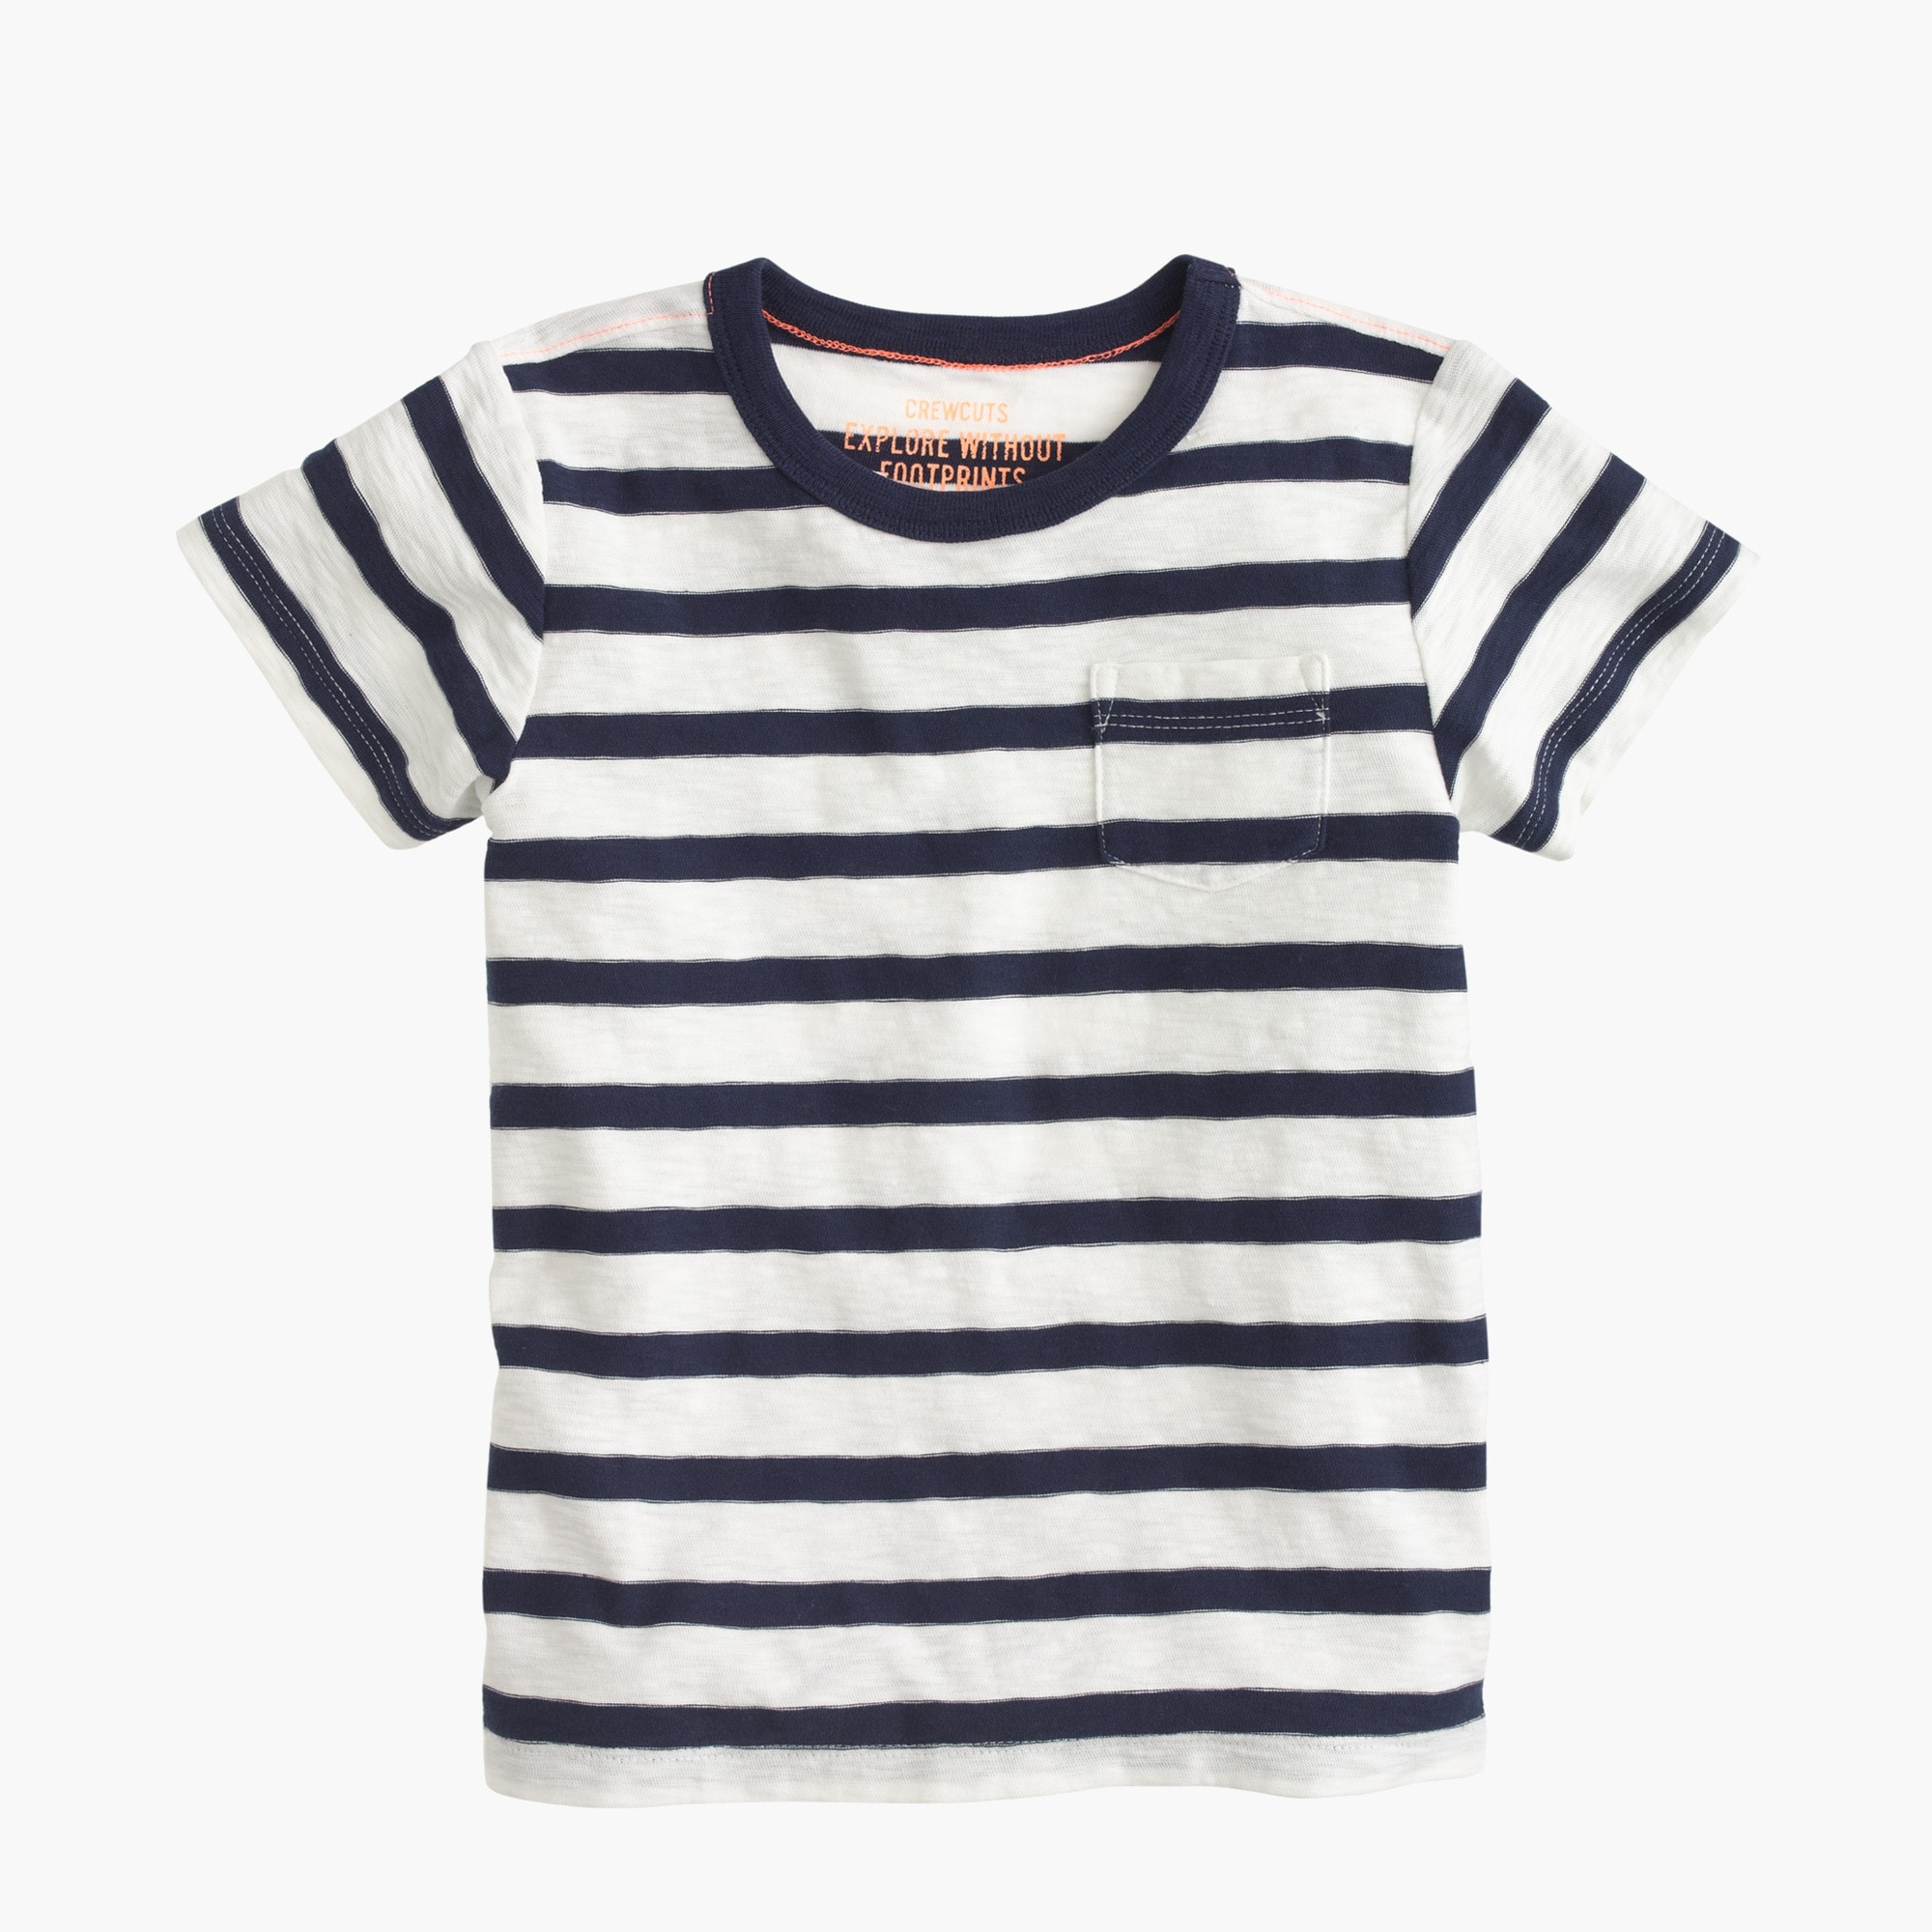 Boys' T-shirt in classic stripe